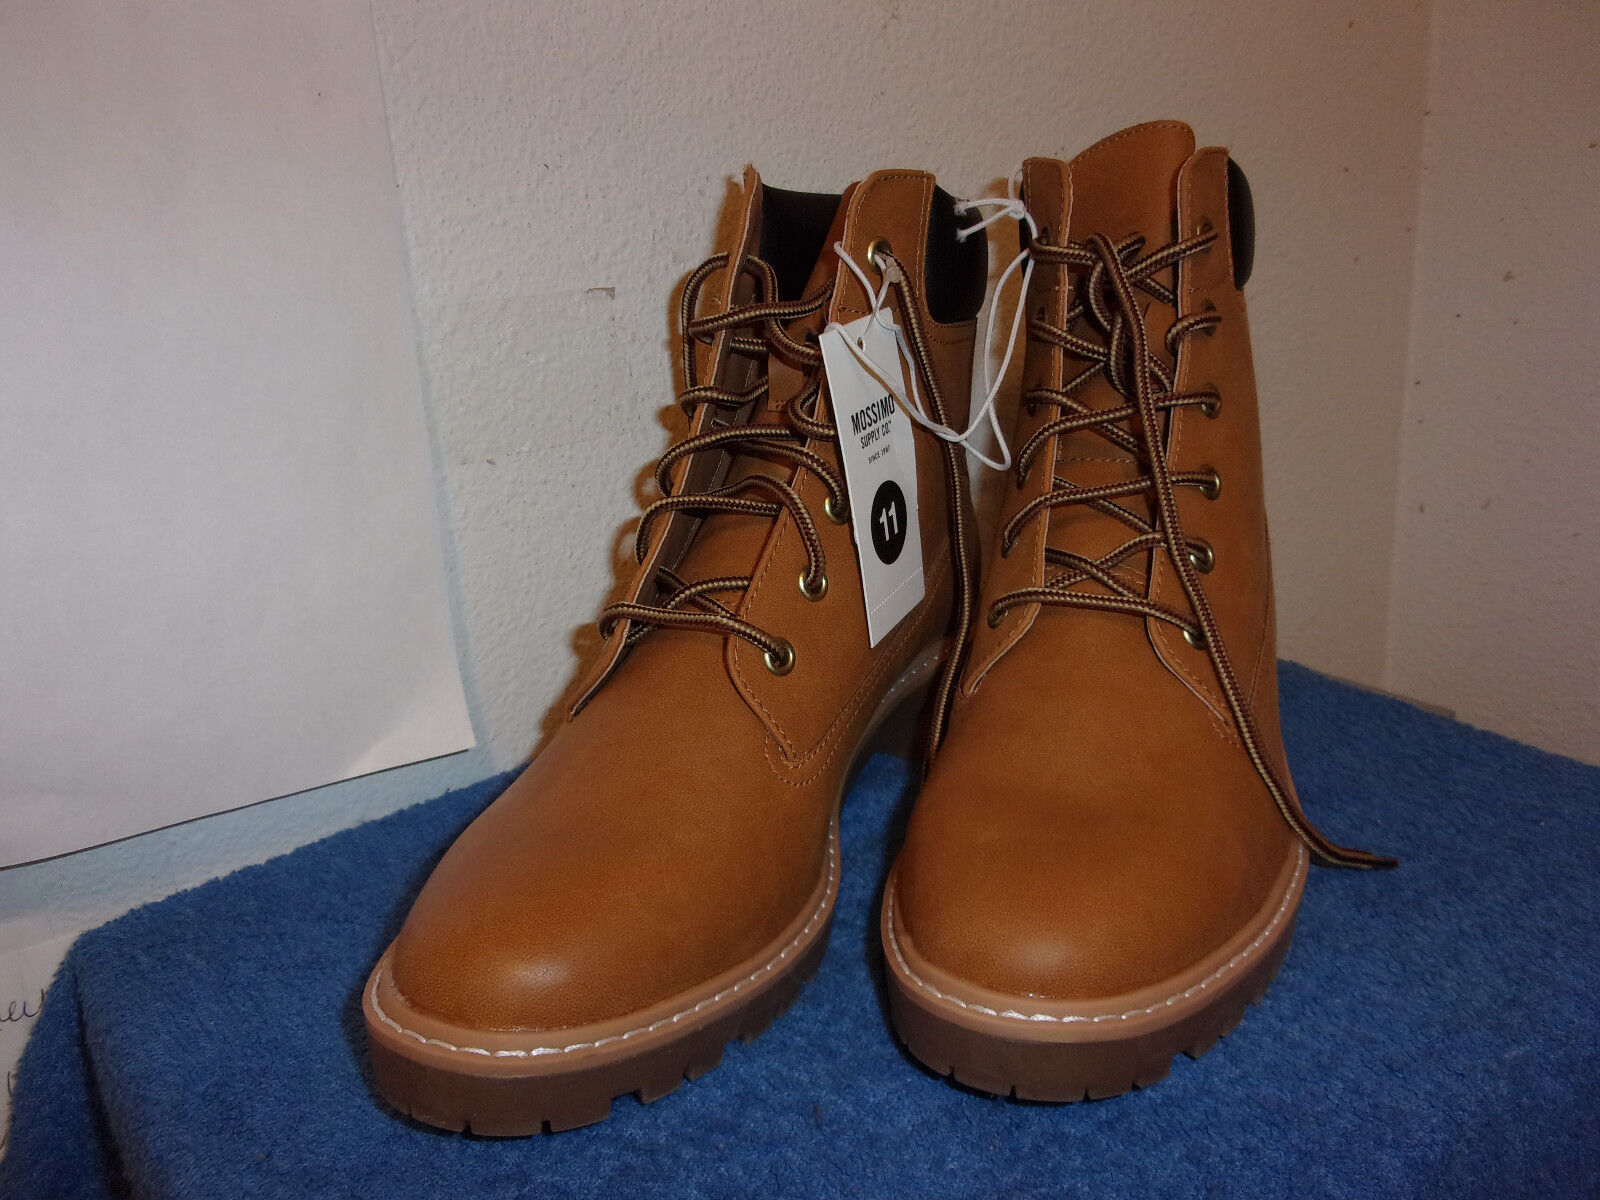 BRAND NEW LADY'S MOSSIMO LACE-UP,HIKING,WORK STYLE BROWN BOOTS